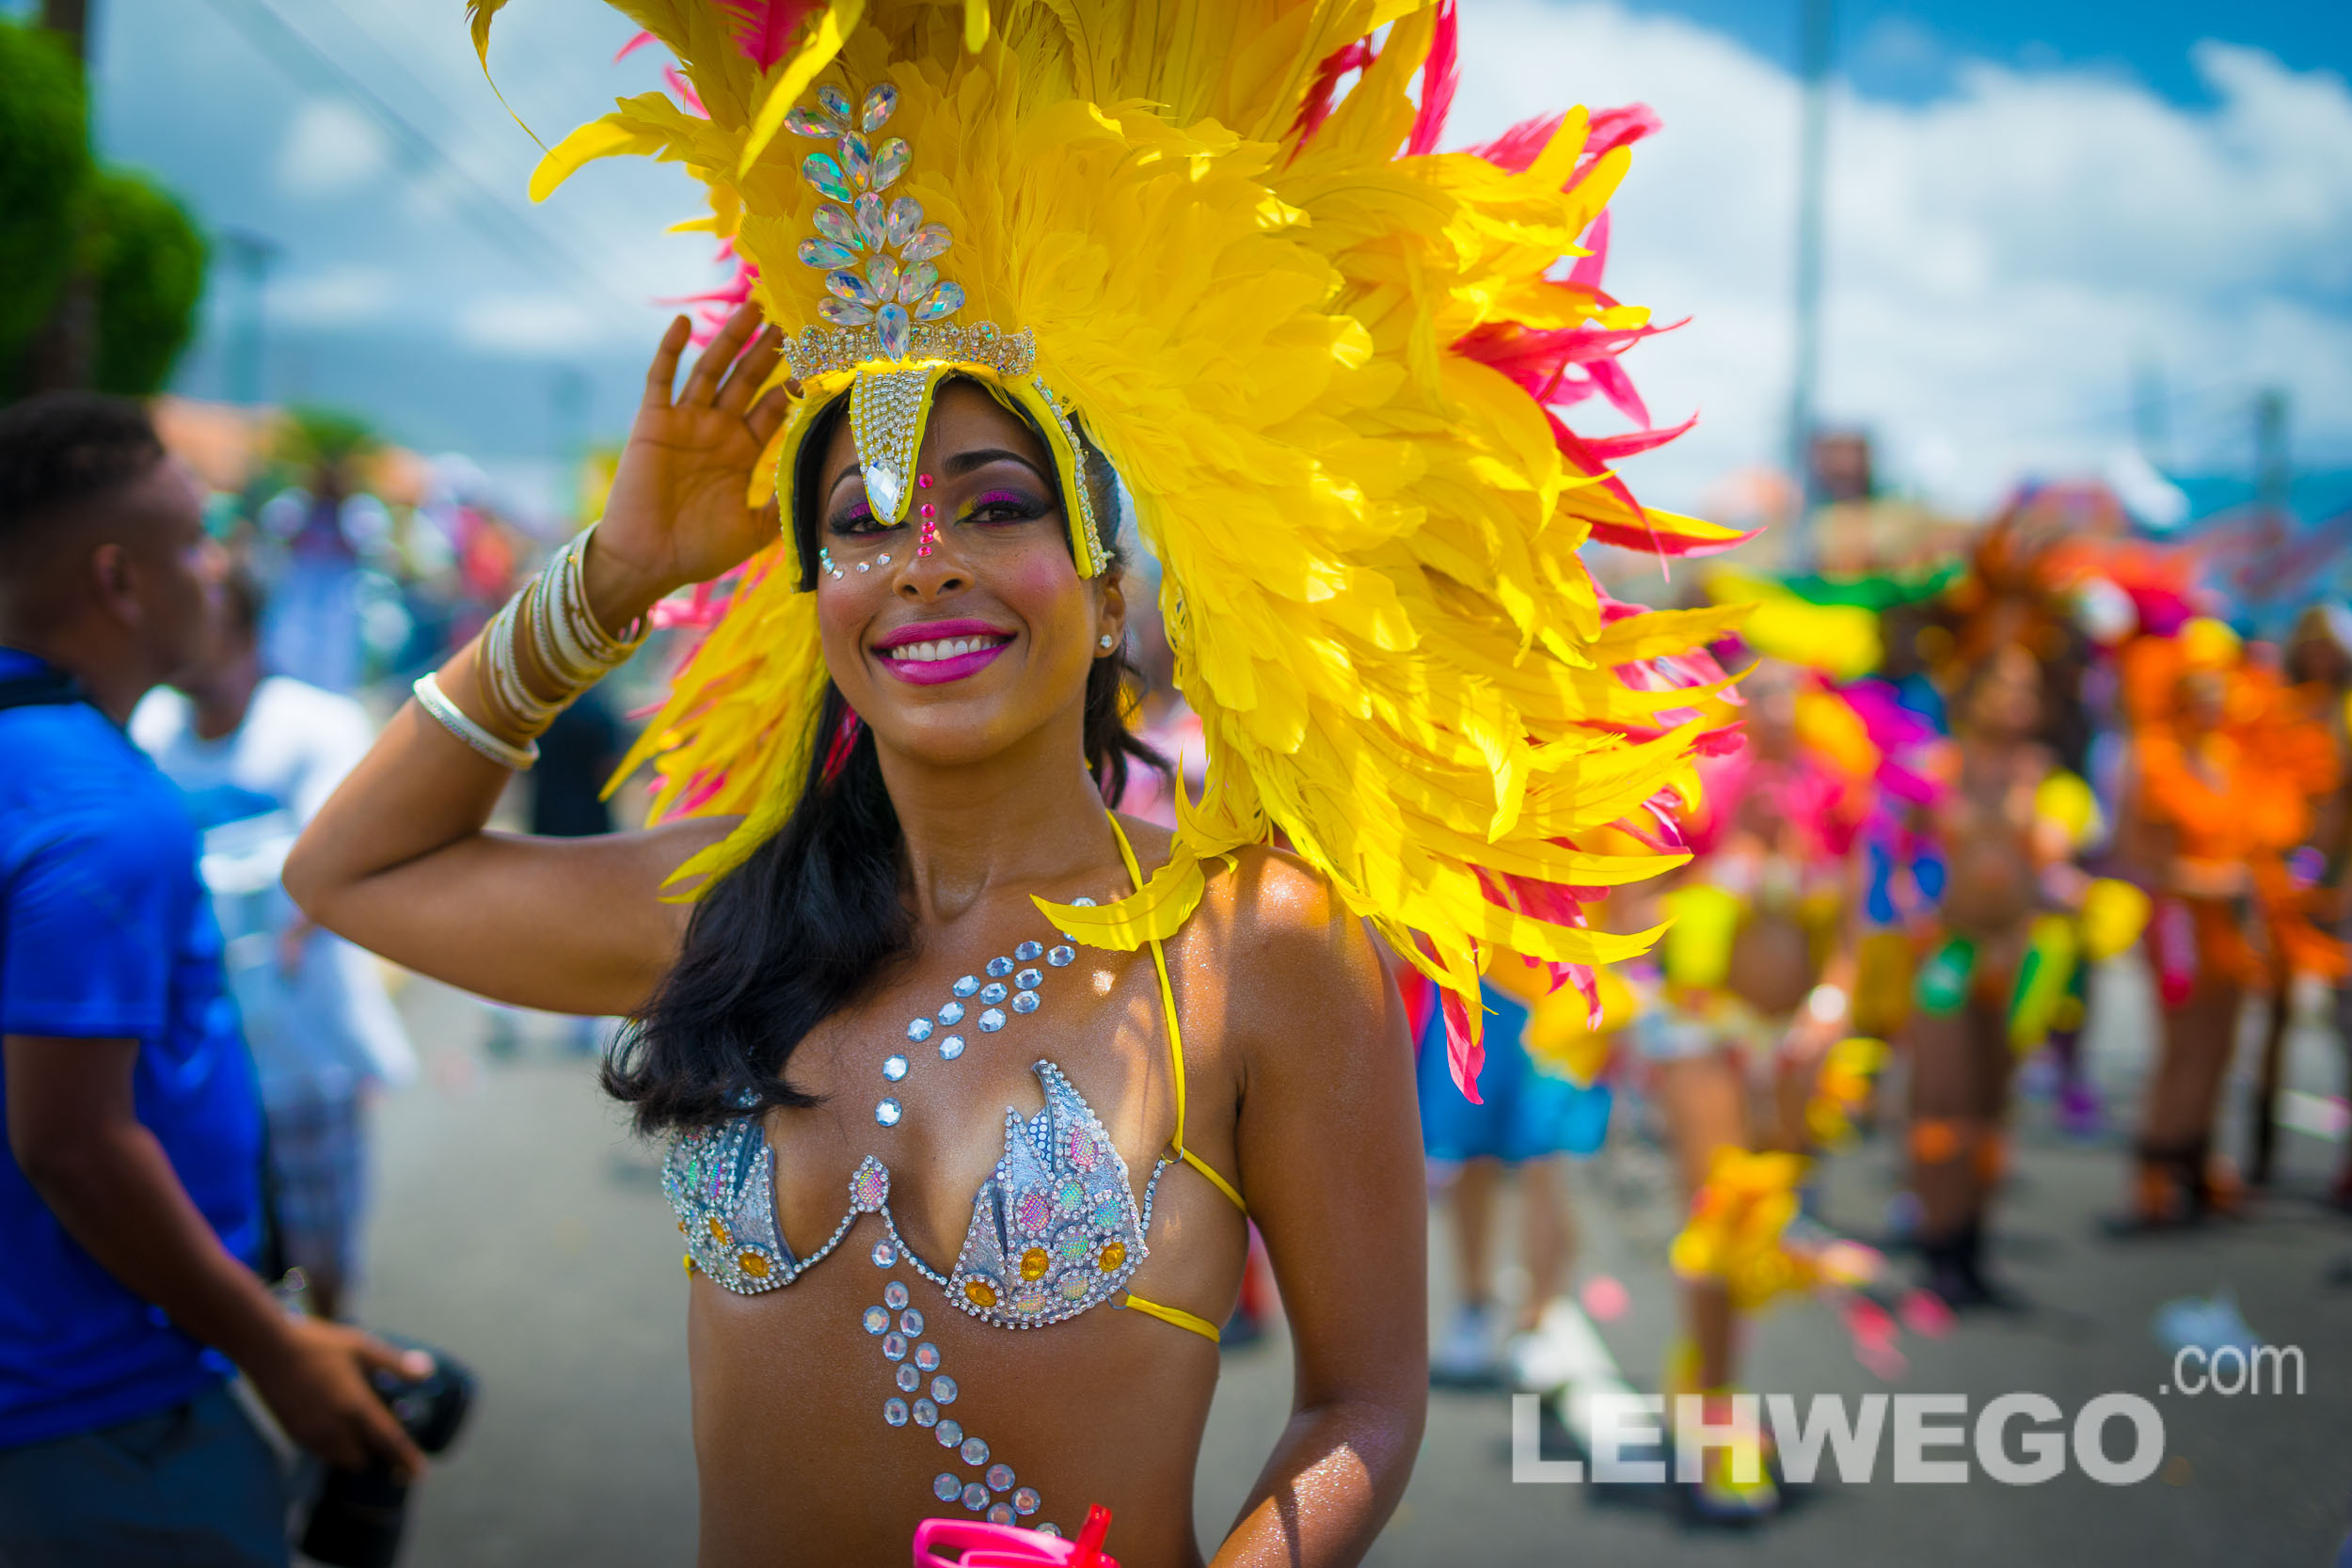 Jamaica carnival recap and what I feel the future holds